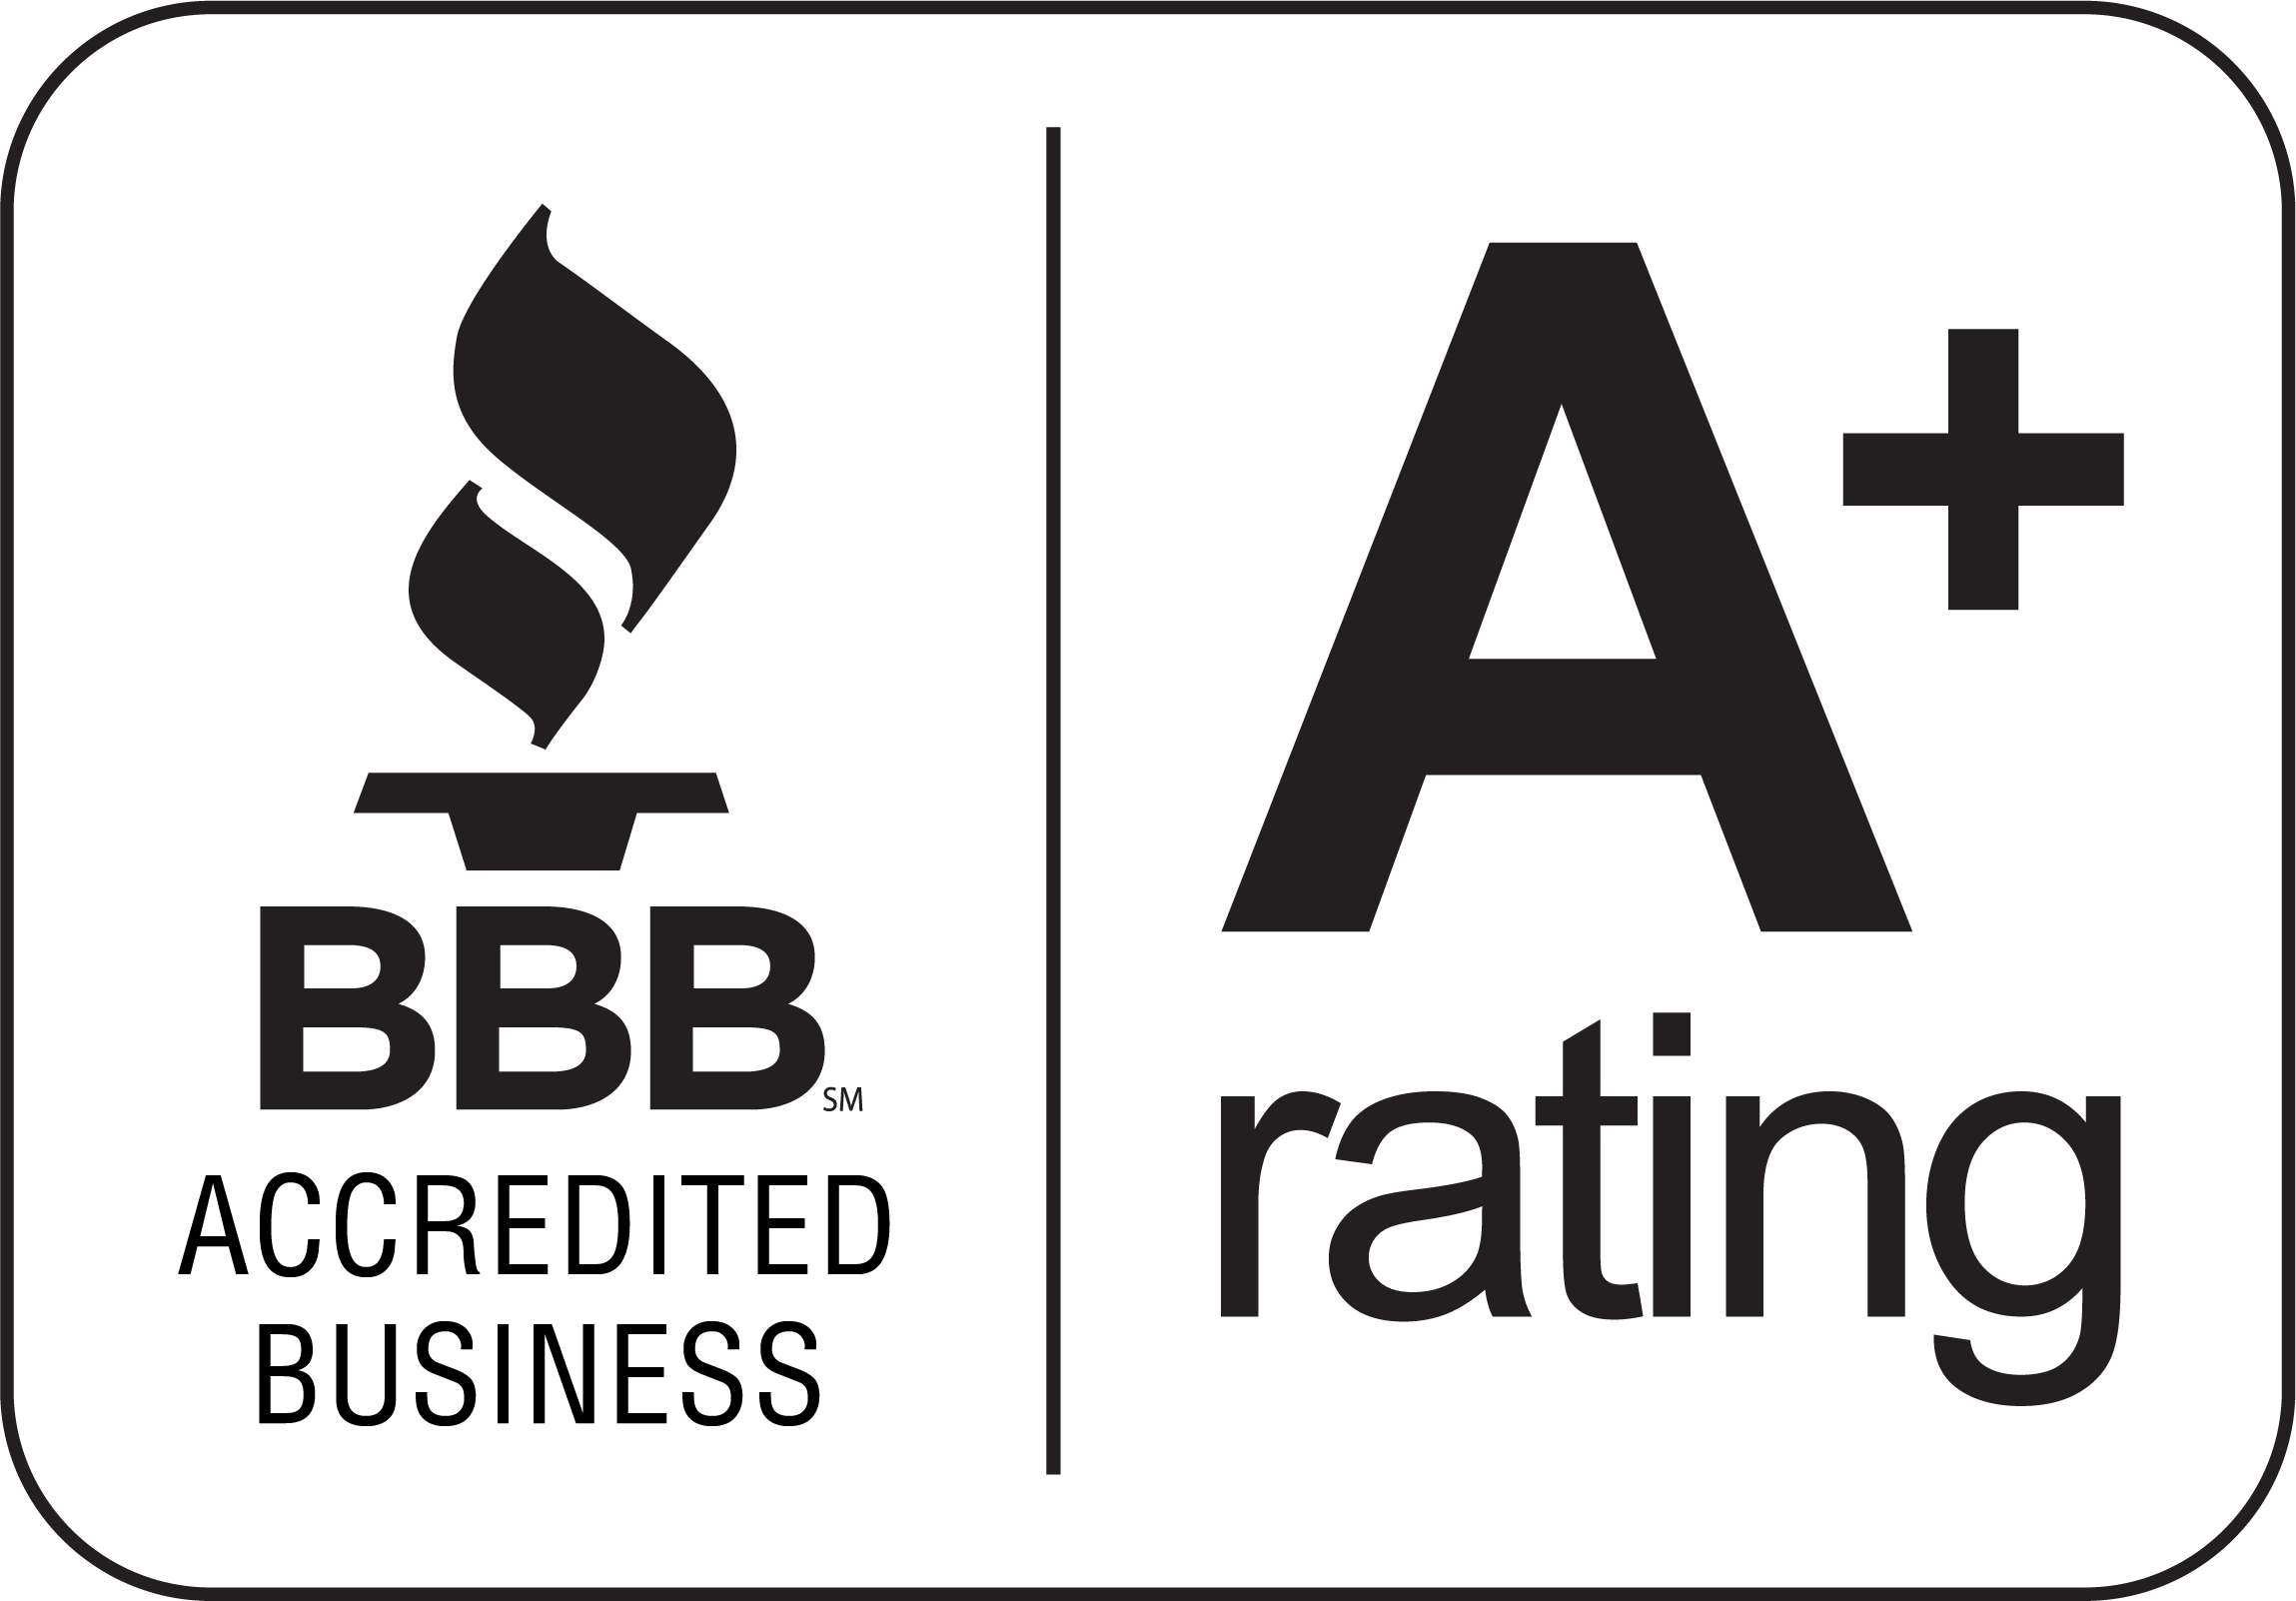 bbb upgrades 1st merchant funding accreditation to a 1st merchant funding. Black Bedroom Furniture Sets. Home Design Ideas